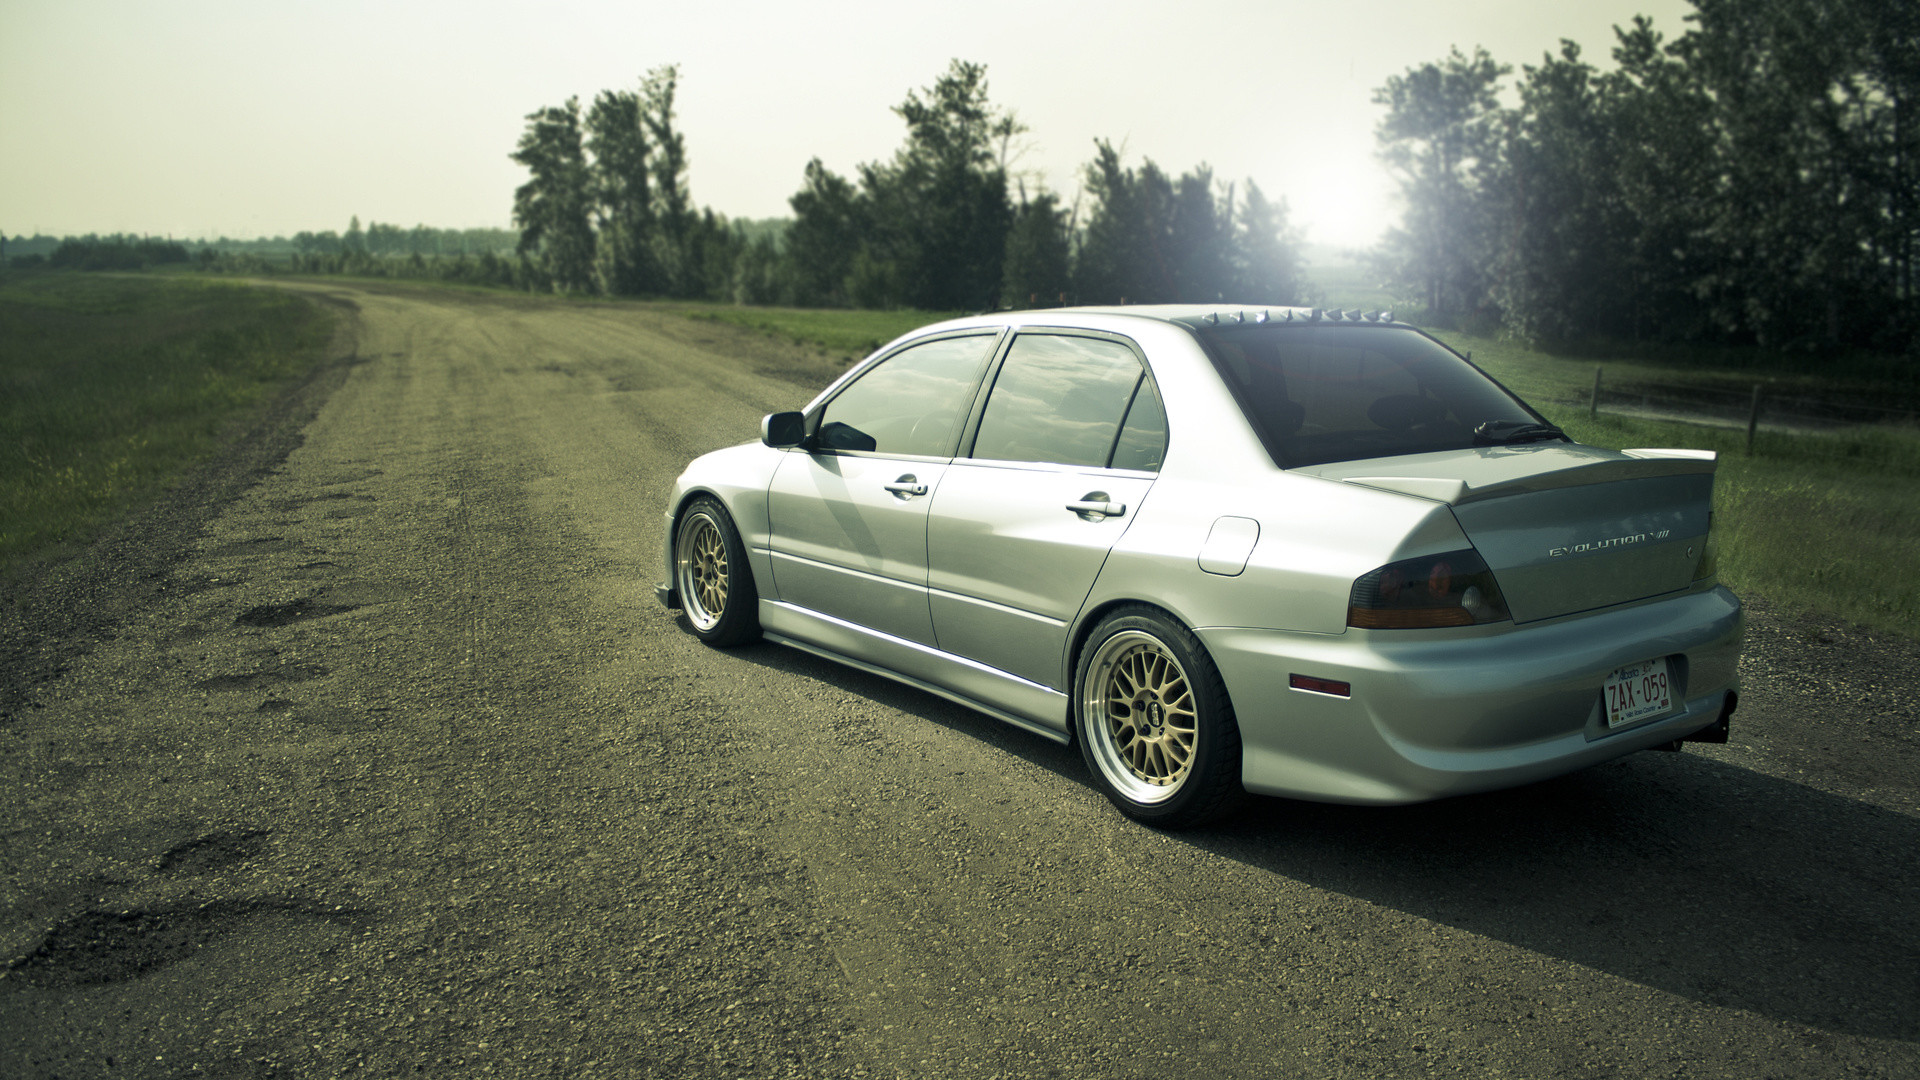 Alloy Wheels Disks Cars Auto Evolution Auto Mitsubishi. 2005 mitsubishi  lancer evolution viii